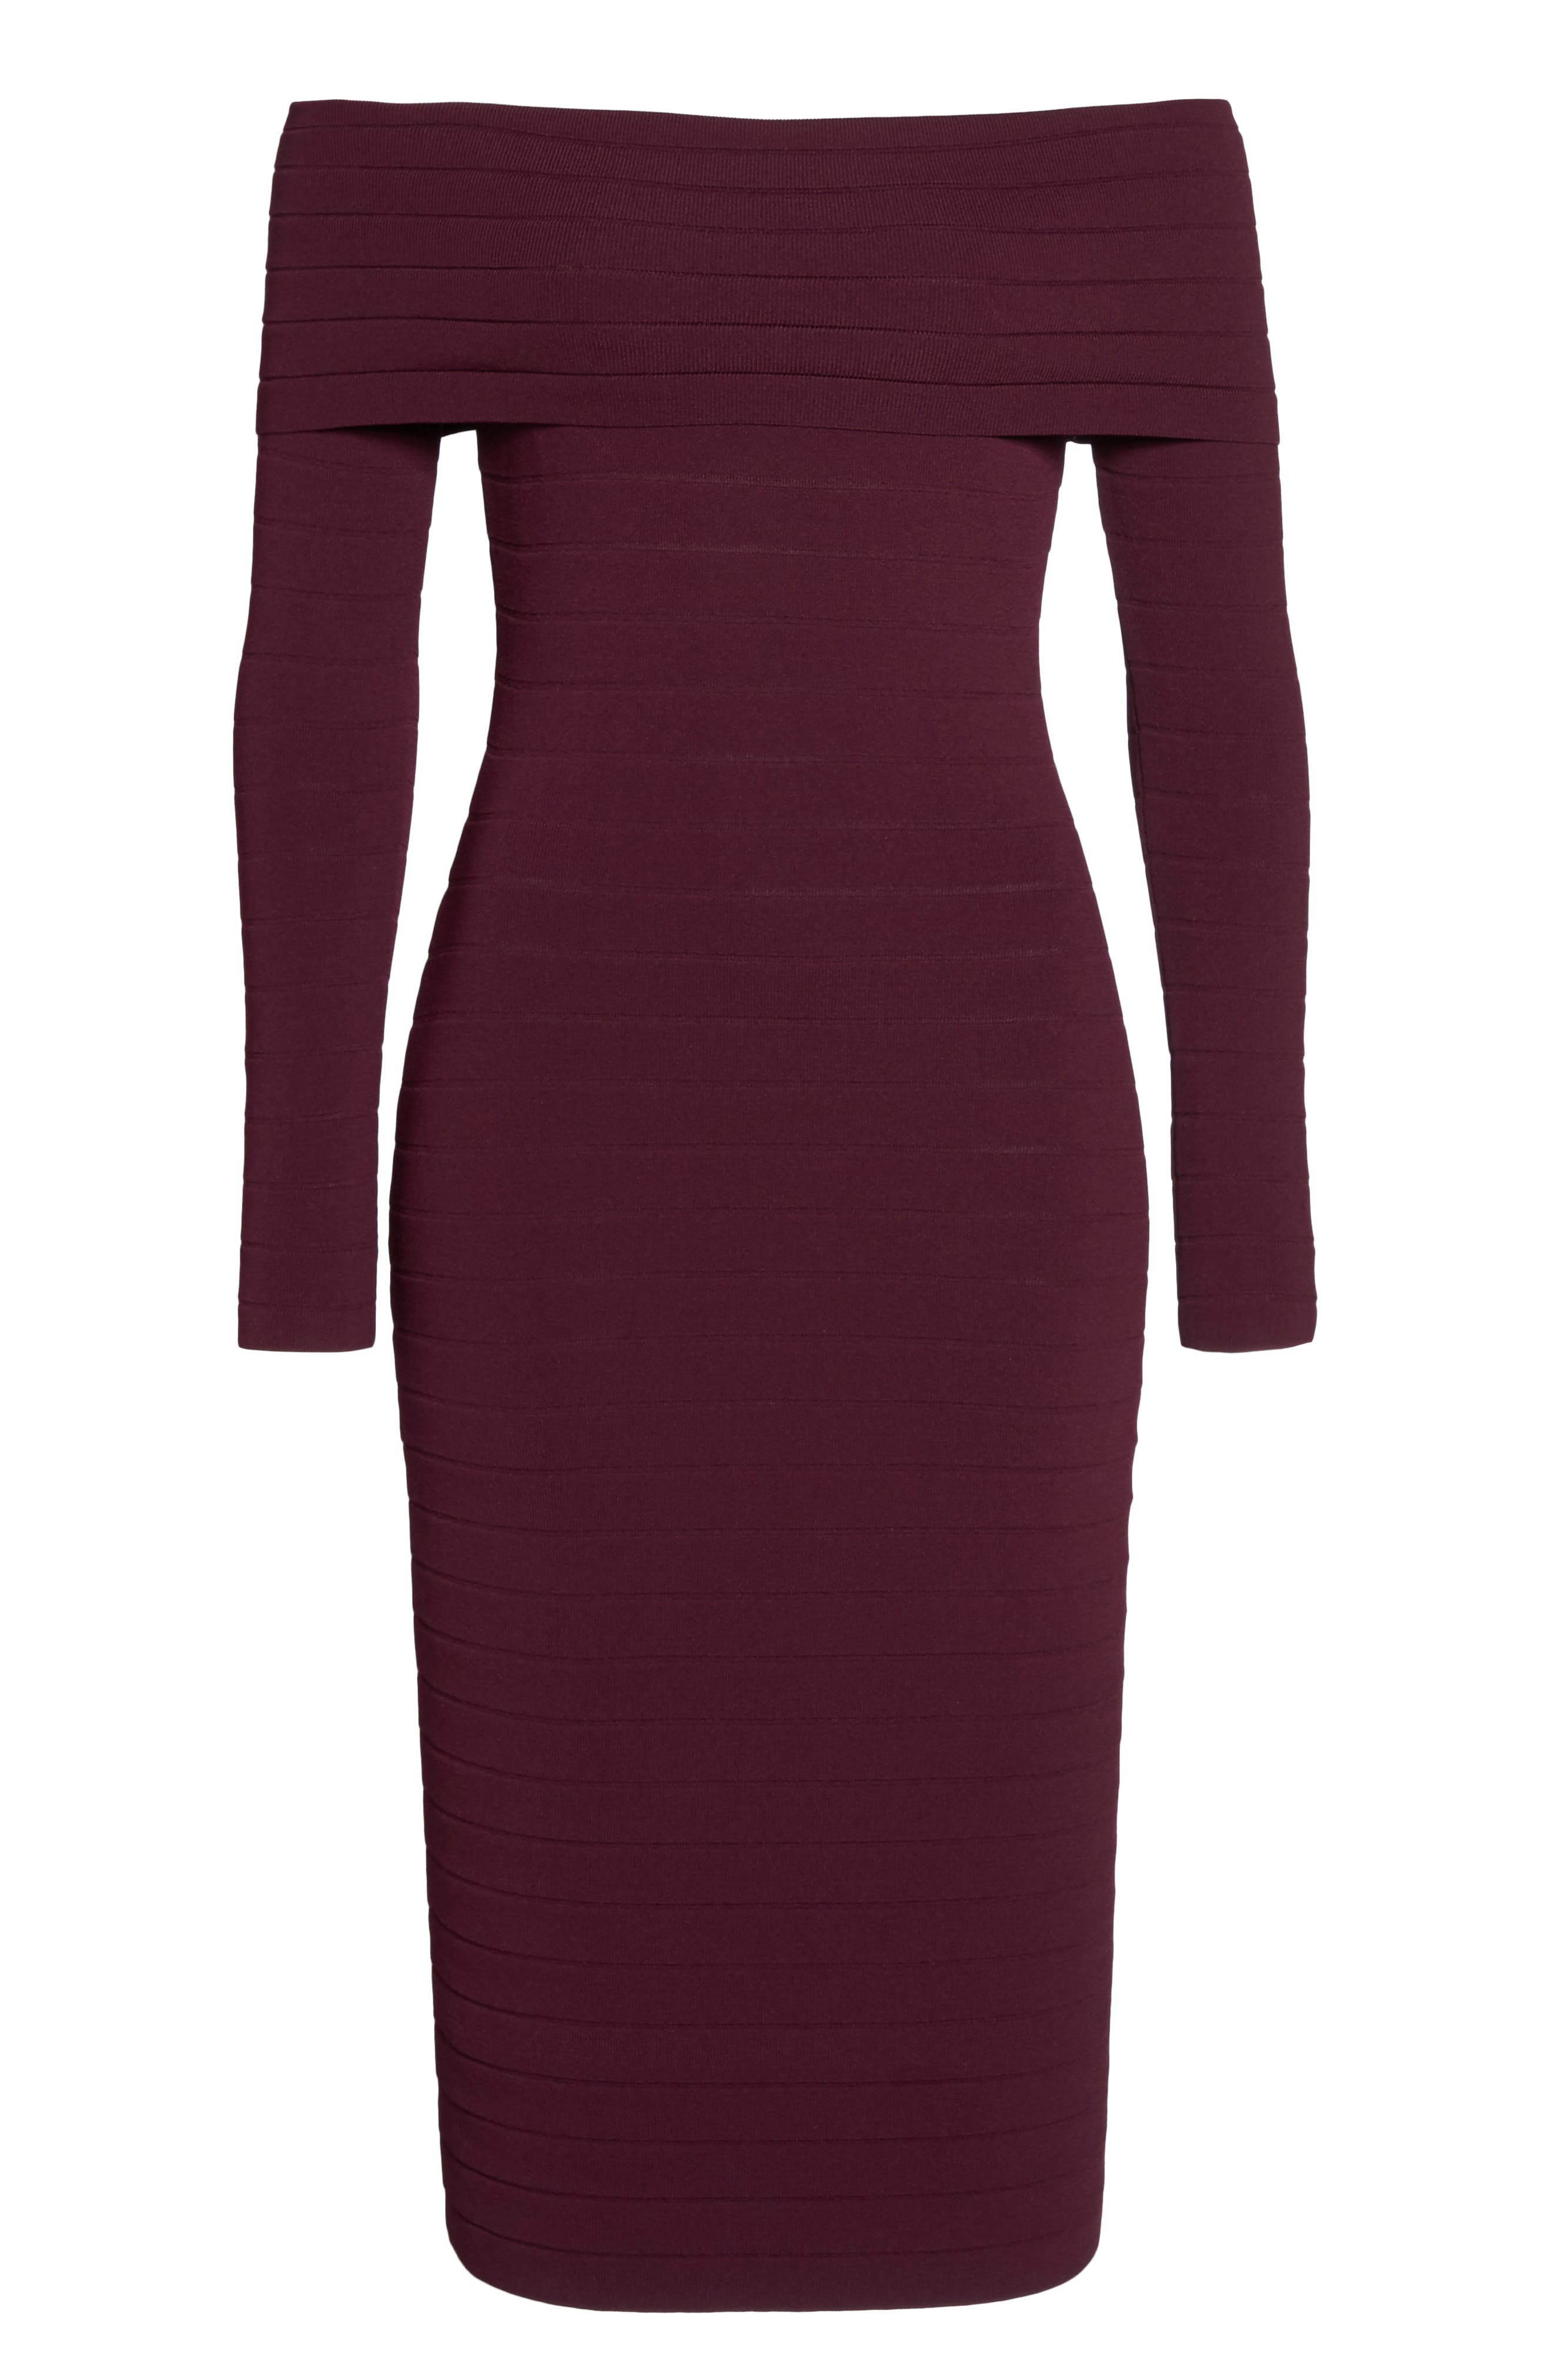 Bandage Midi Dress,                             Alternate thumbnail 29, color,